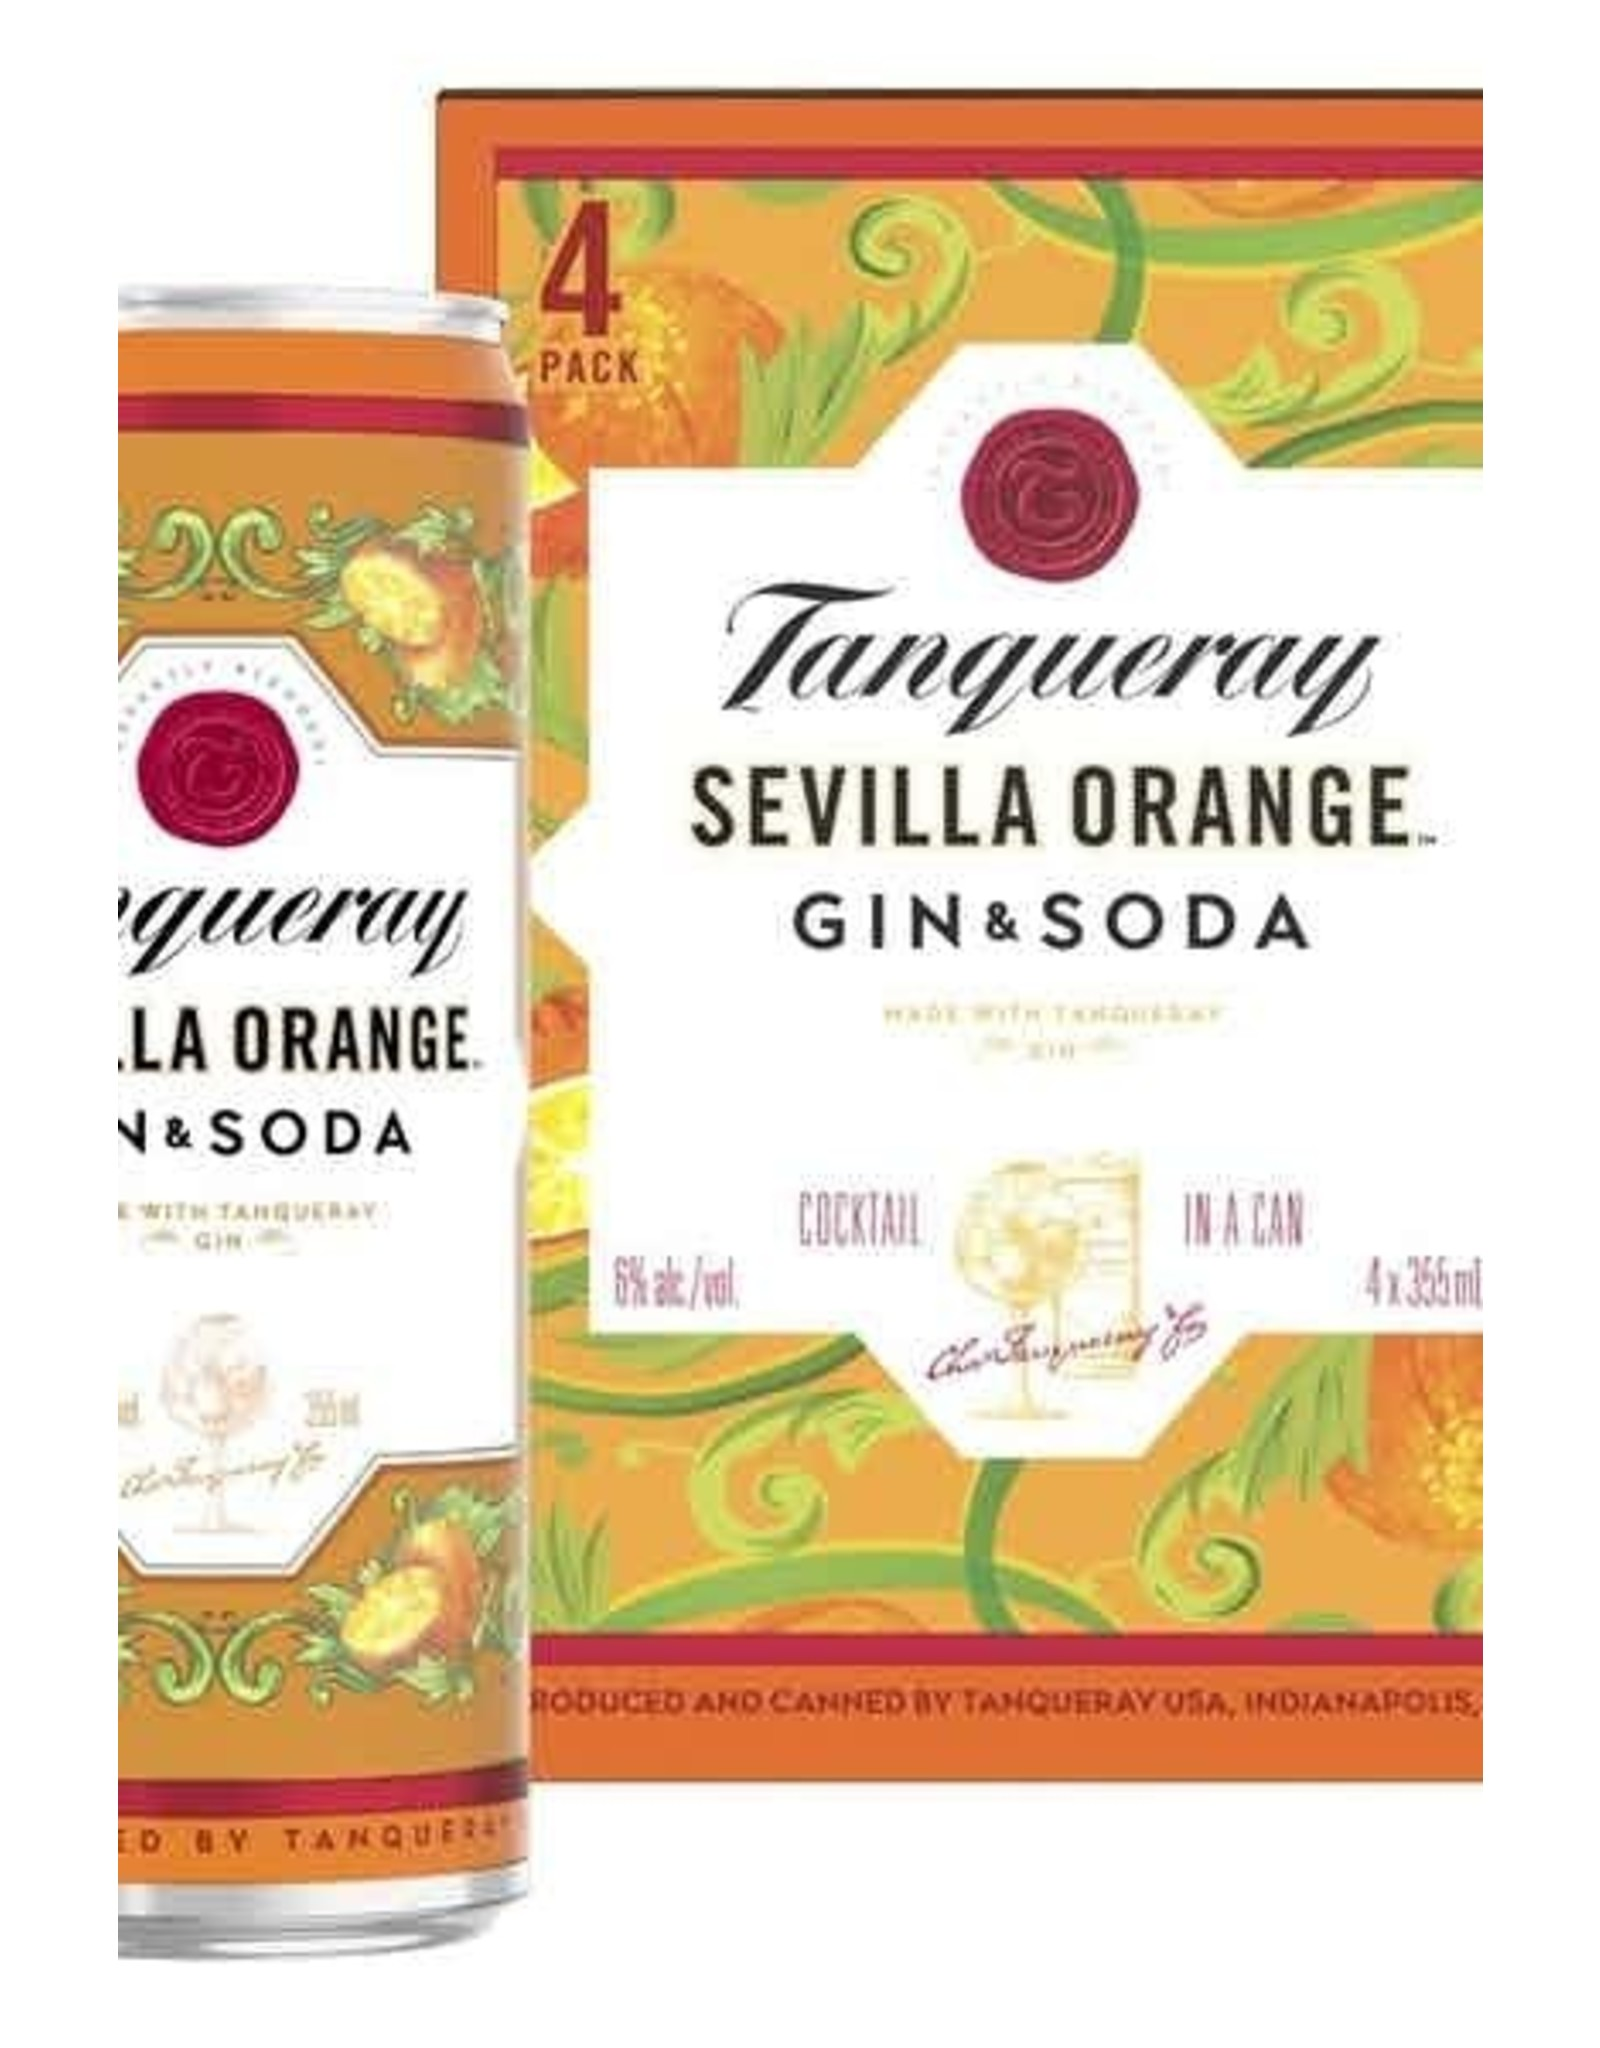 Tanqueray Gin & Soda Sevilla Orange 4 pack